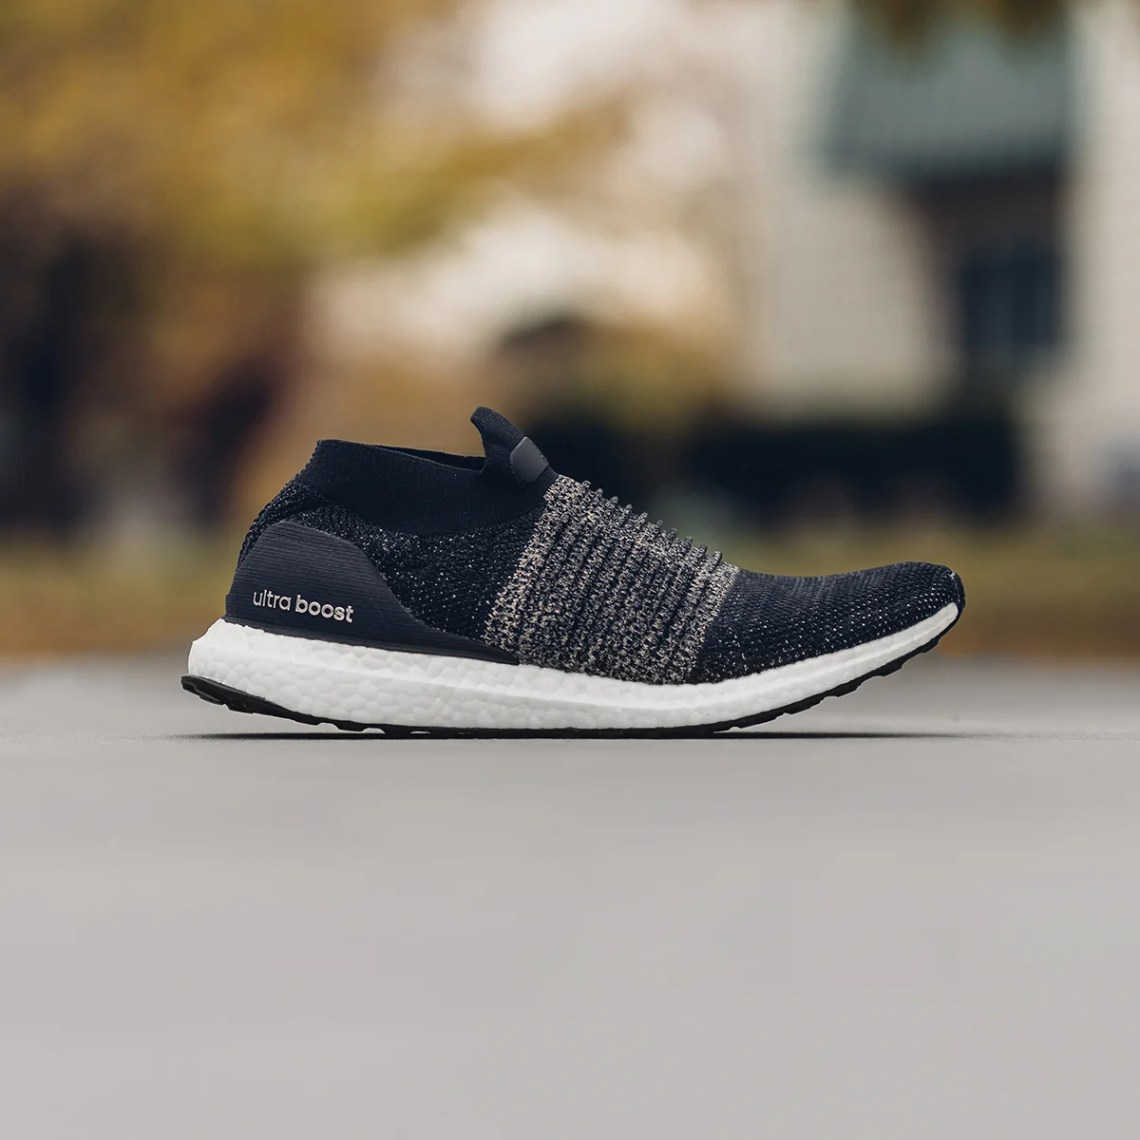 reputable site 7e04f d1795 Adidas UltraBoost Laceless